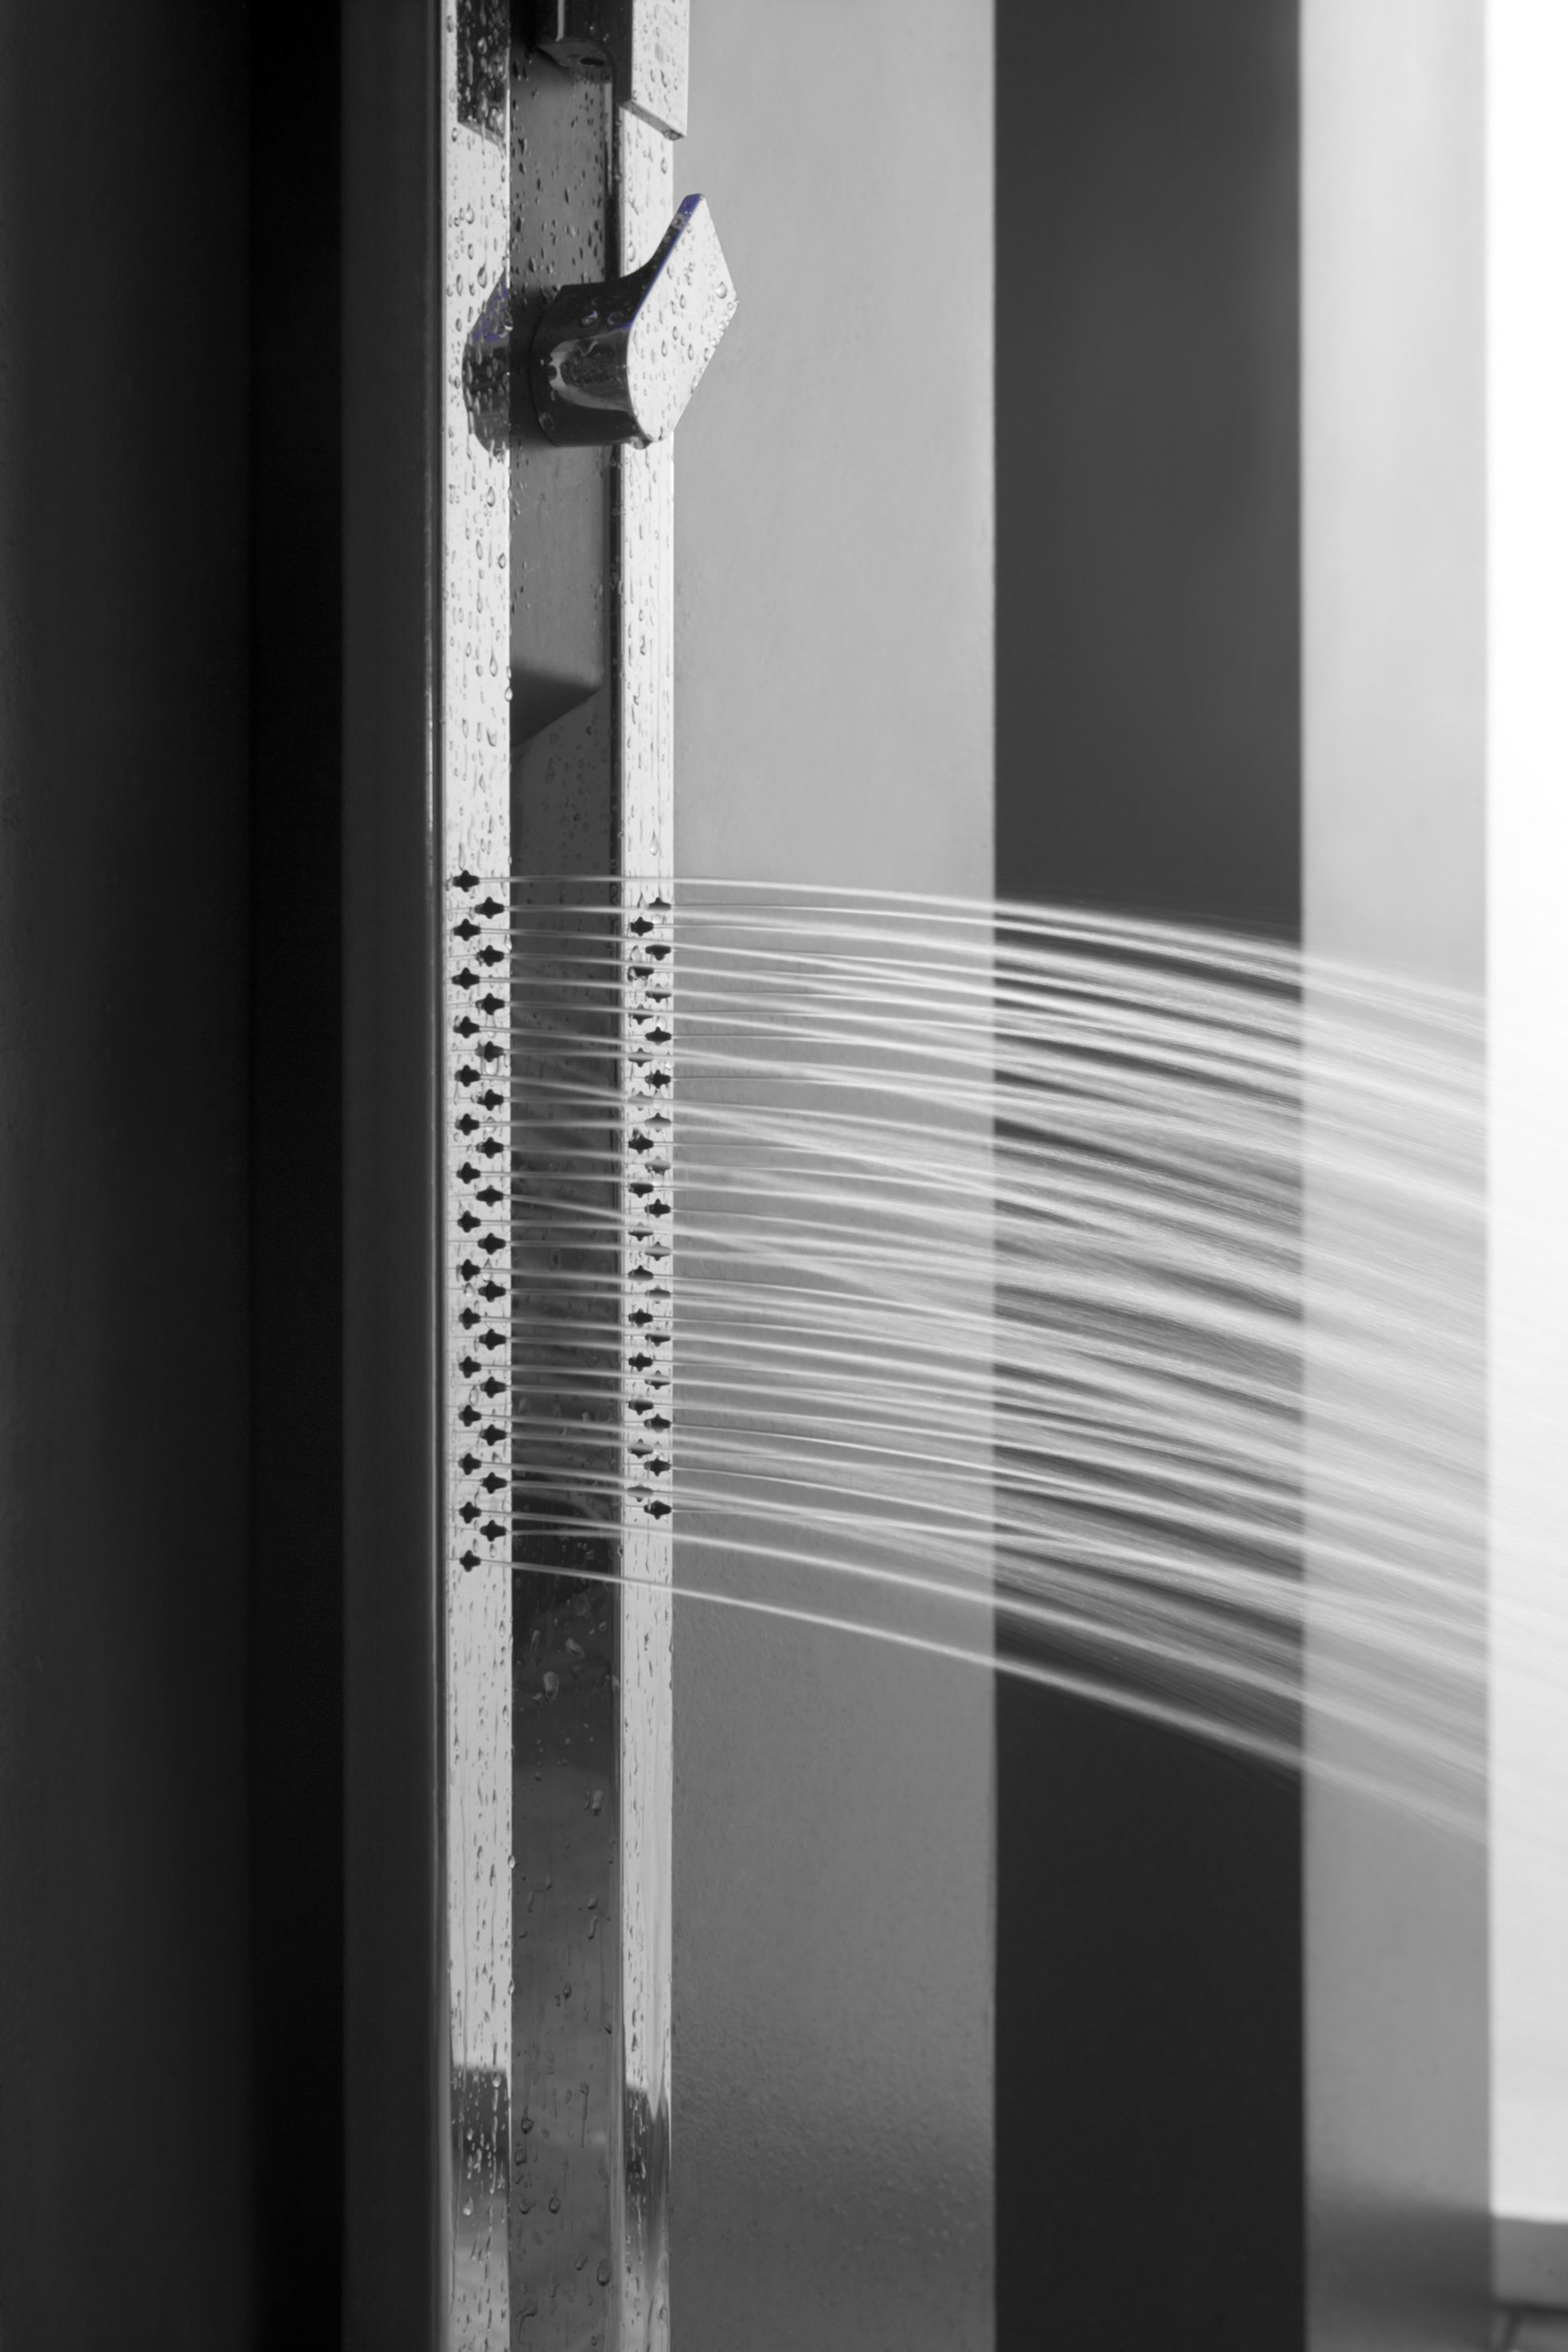 The electric body sprays on the Ametis Shower System, designed by ... - The electric body sprays on the Ametis Shower System, designed by Davide  Oppizzi.